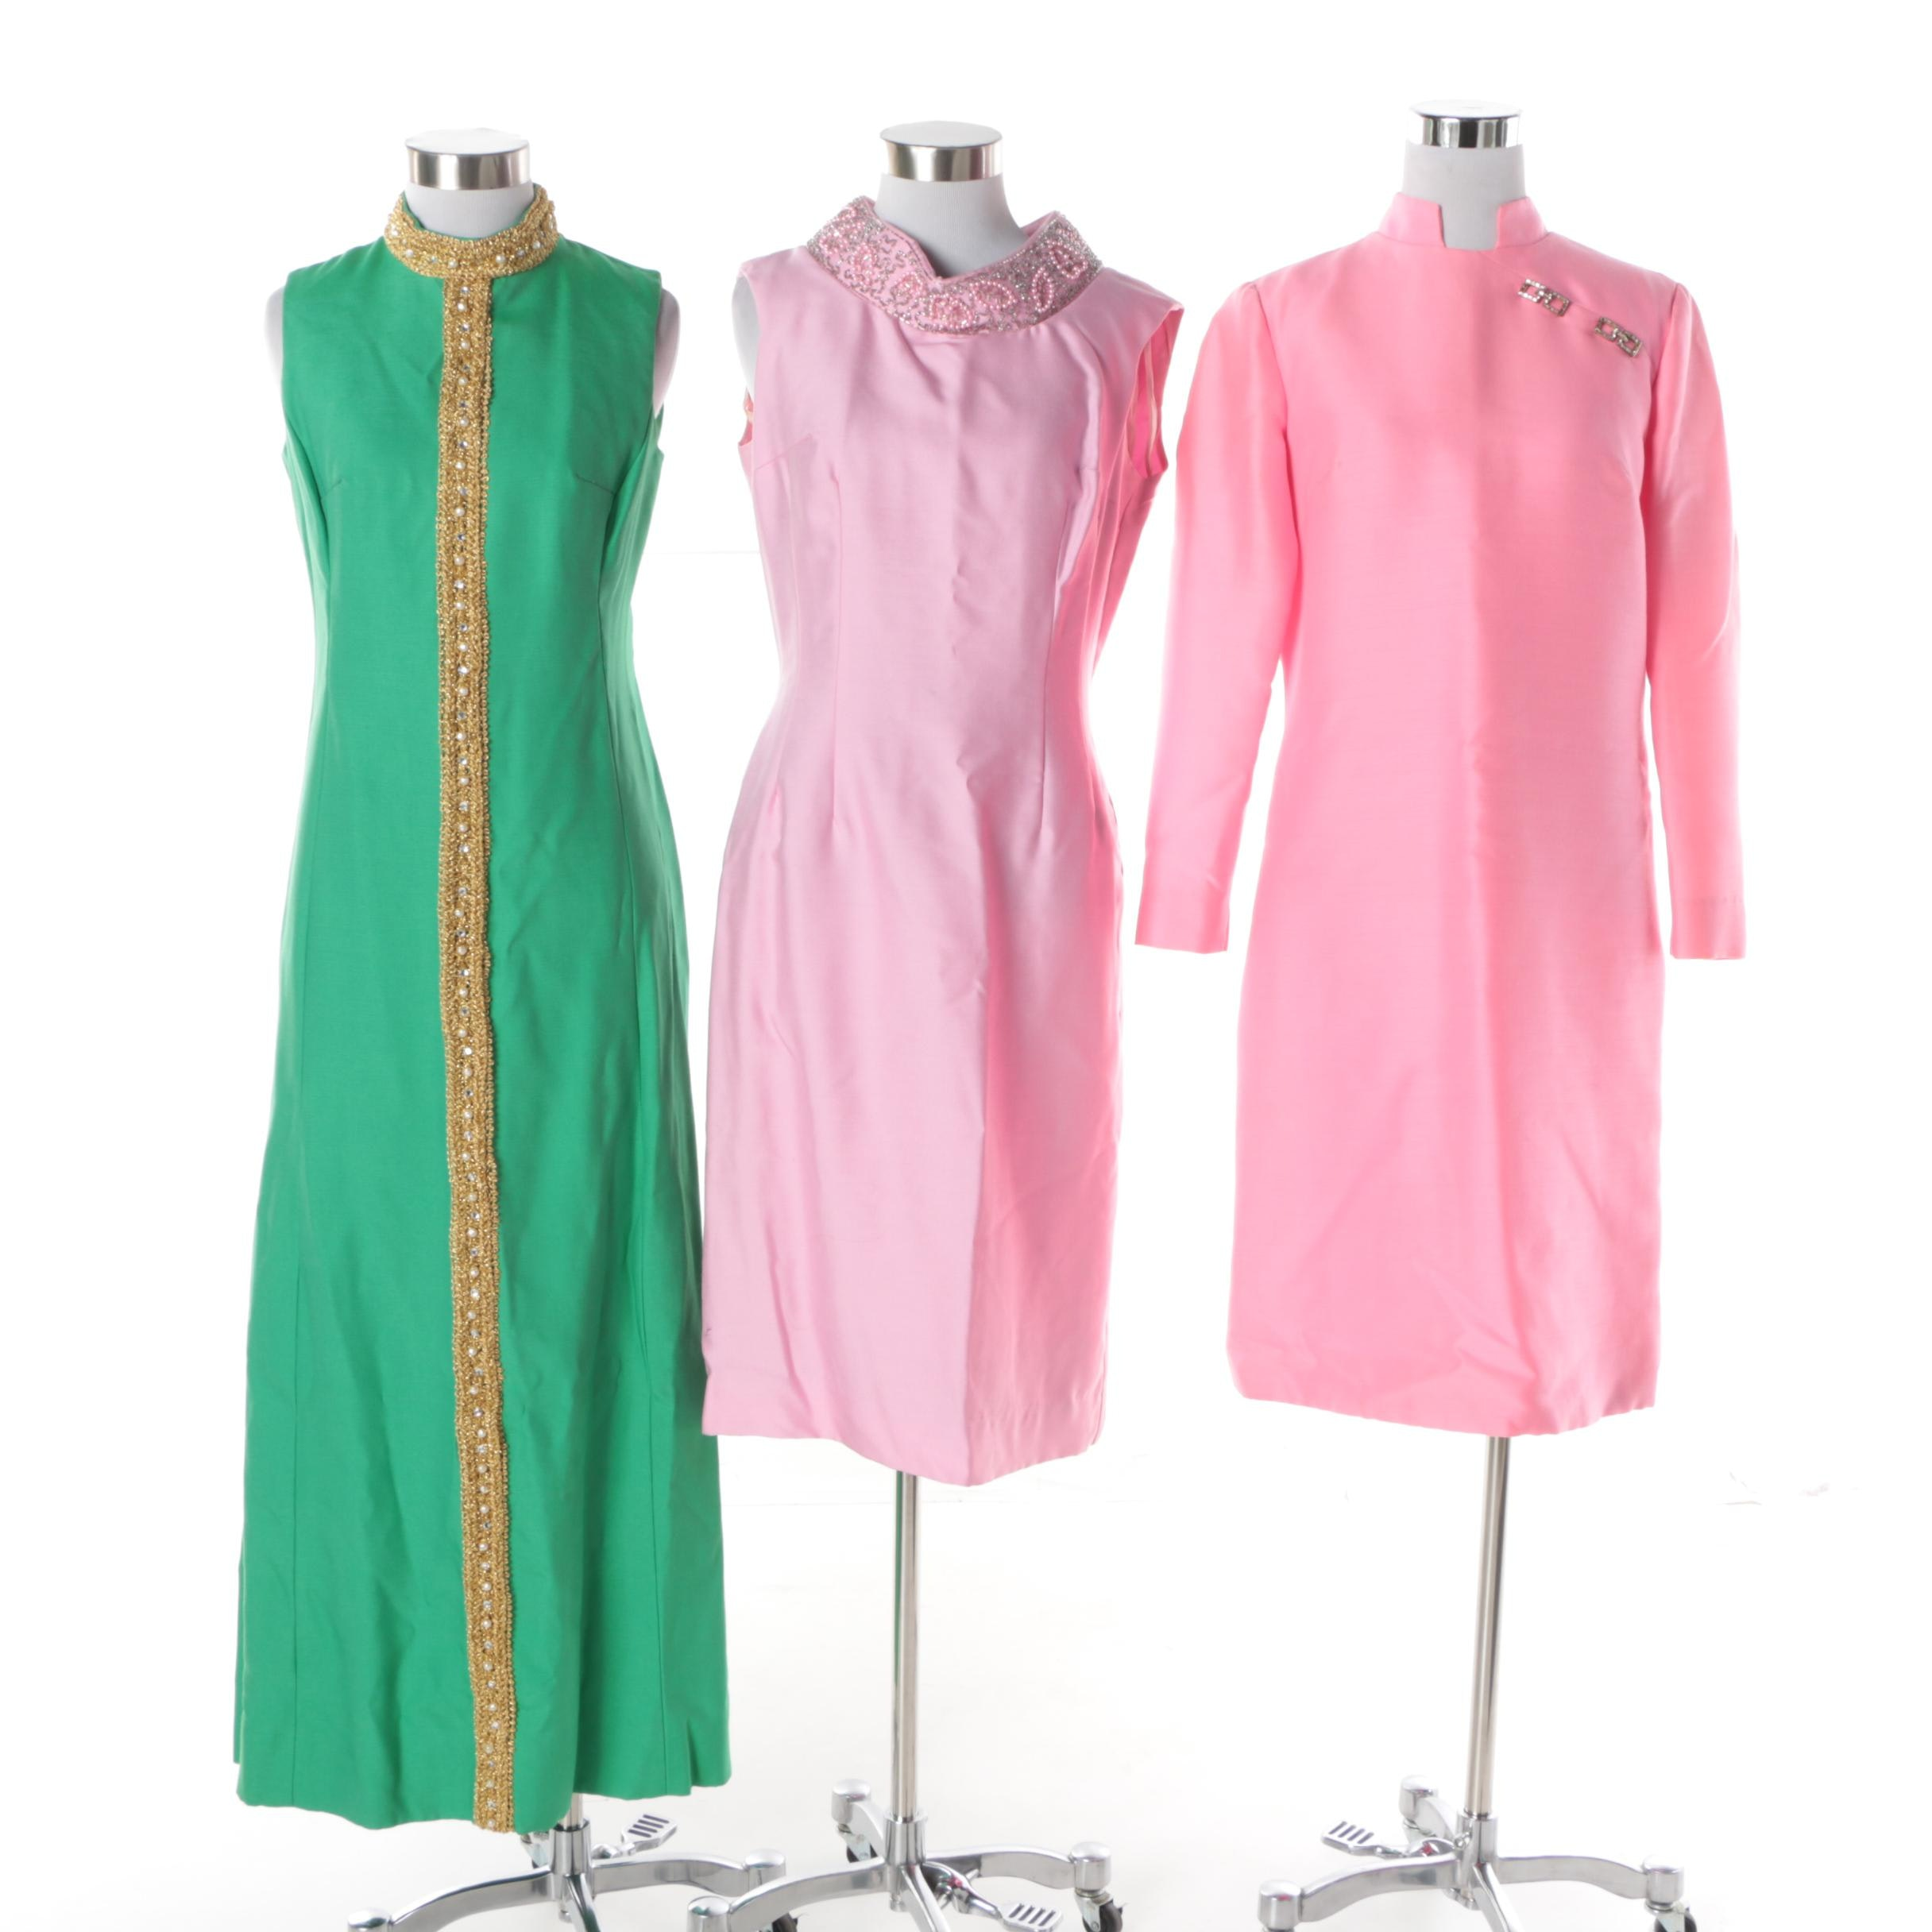 Circa 1960s-1970s Vintage Cocktail Dresses Including Date Makers Formals